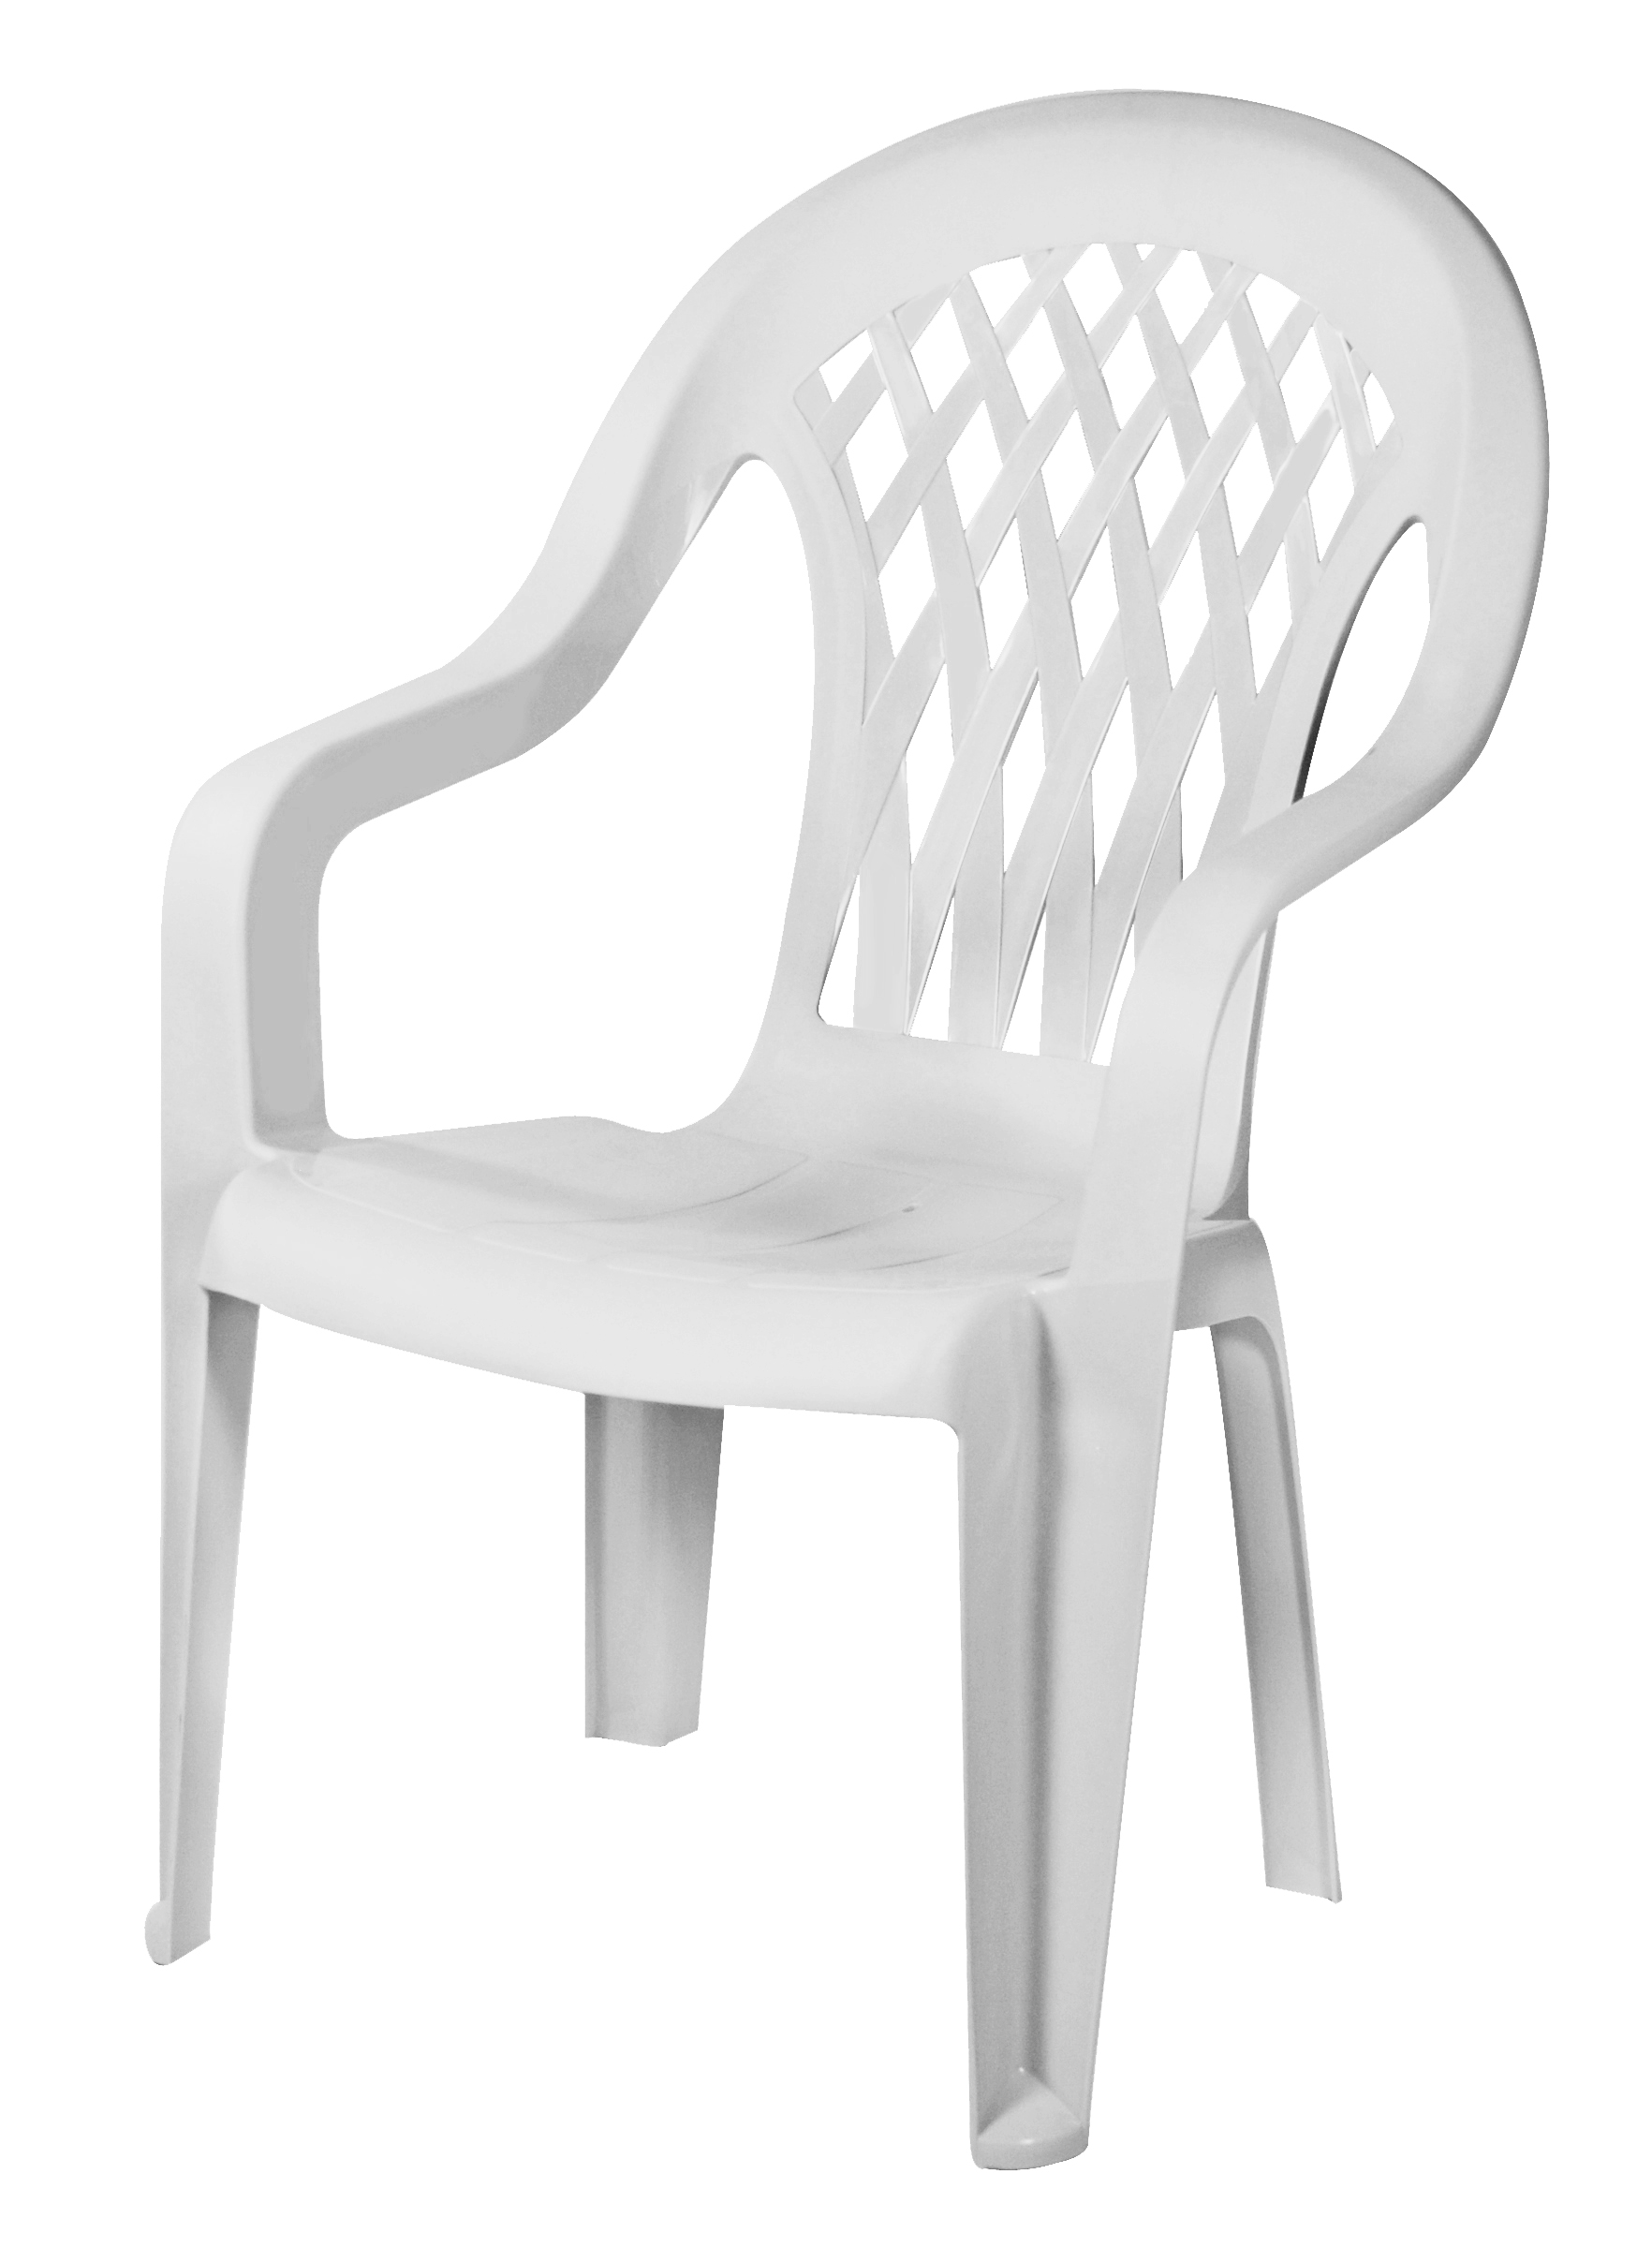 Low Back Lawn Chairs Gracious Living Lattice High Back Chair White